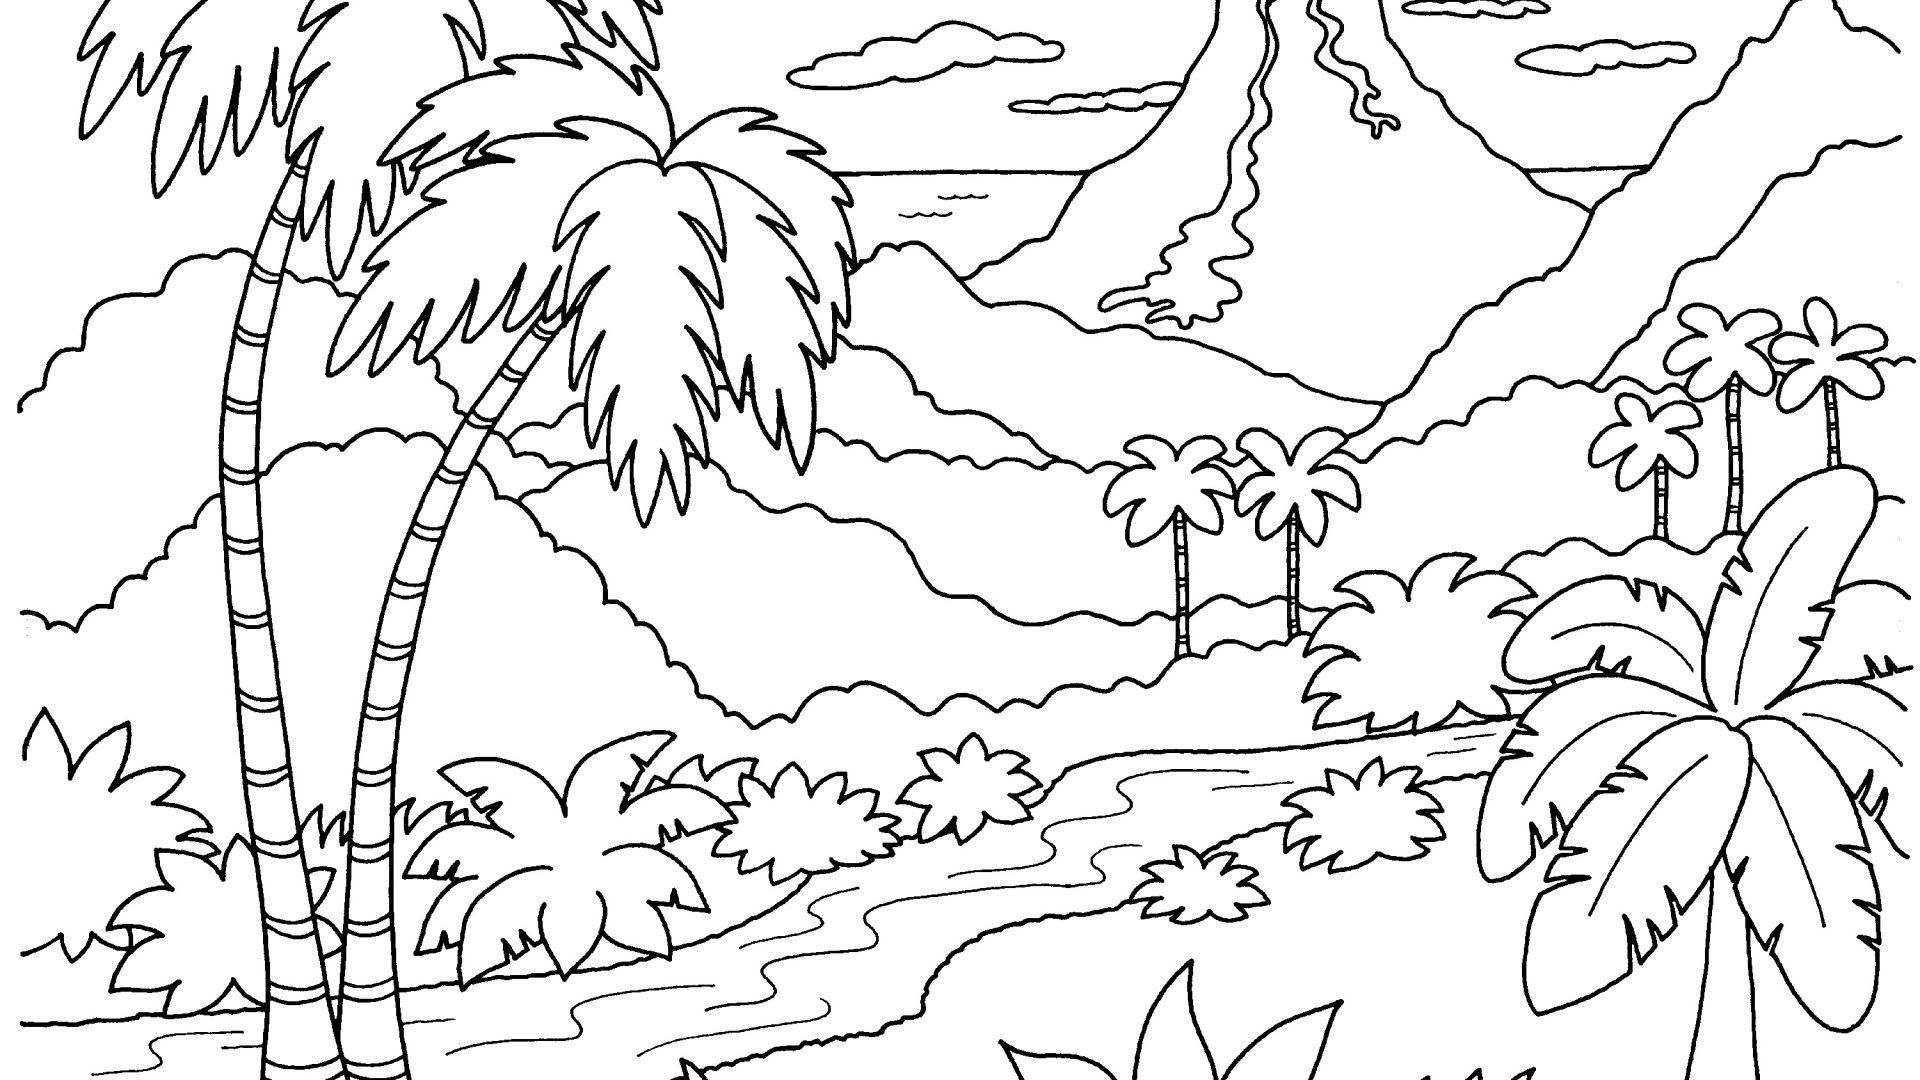 Tropical Nature Scenery Coloring Pictures Coloring Coloring Pages Nature Barbie Coloring Pages Coloring Pages